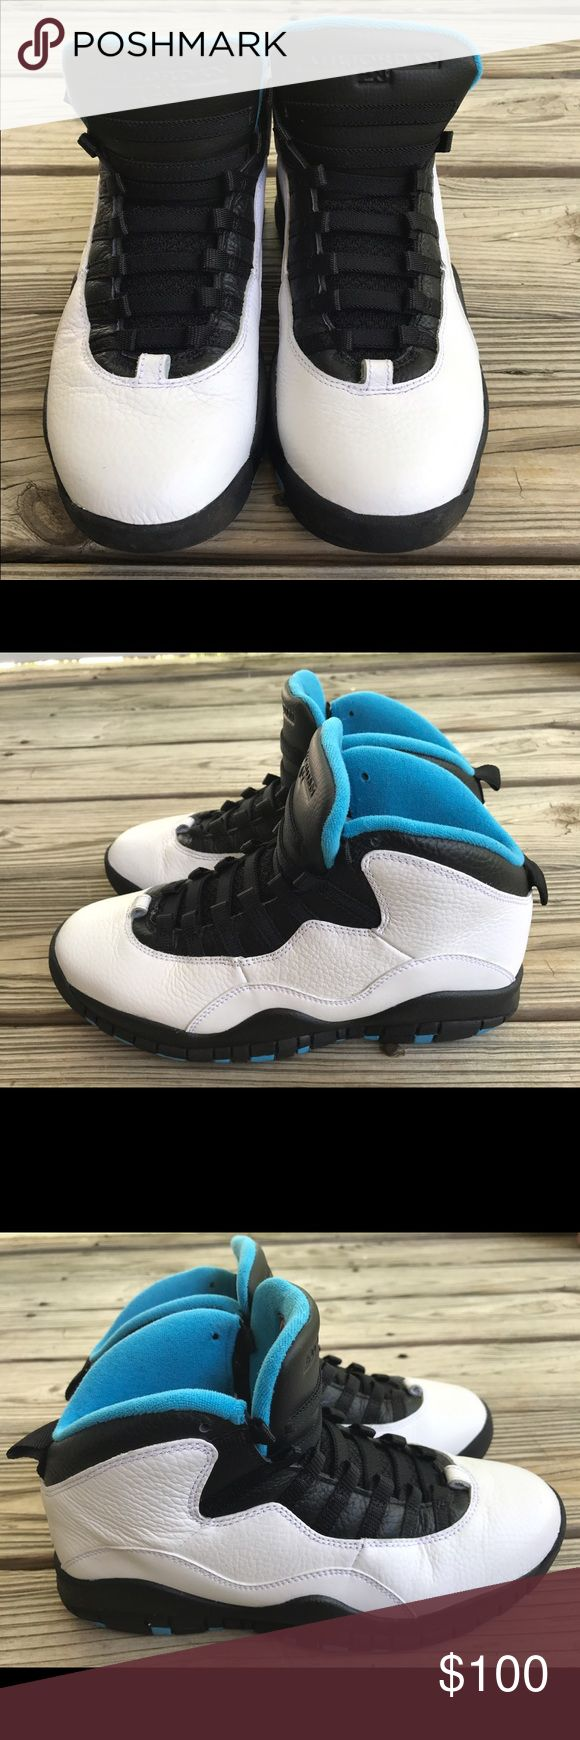 Authentic Retro Jordan 10 White, black and blue Authentic Retro Jordan 10 White,Black and Blue. No shoe laces,No Box. 🚫Offers in the comment section will not be considered please use the offer Button.🚫 Jordan Shoes Sneakers